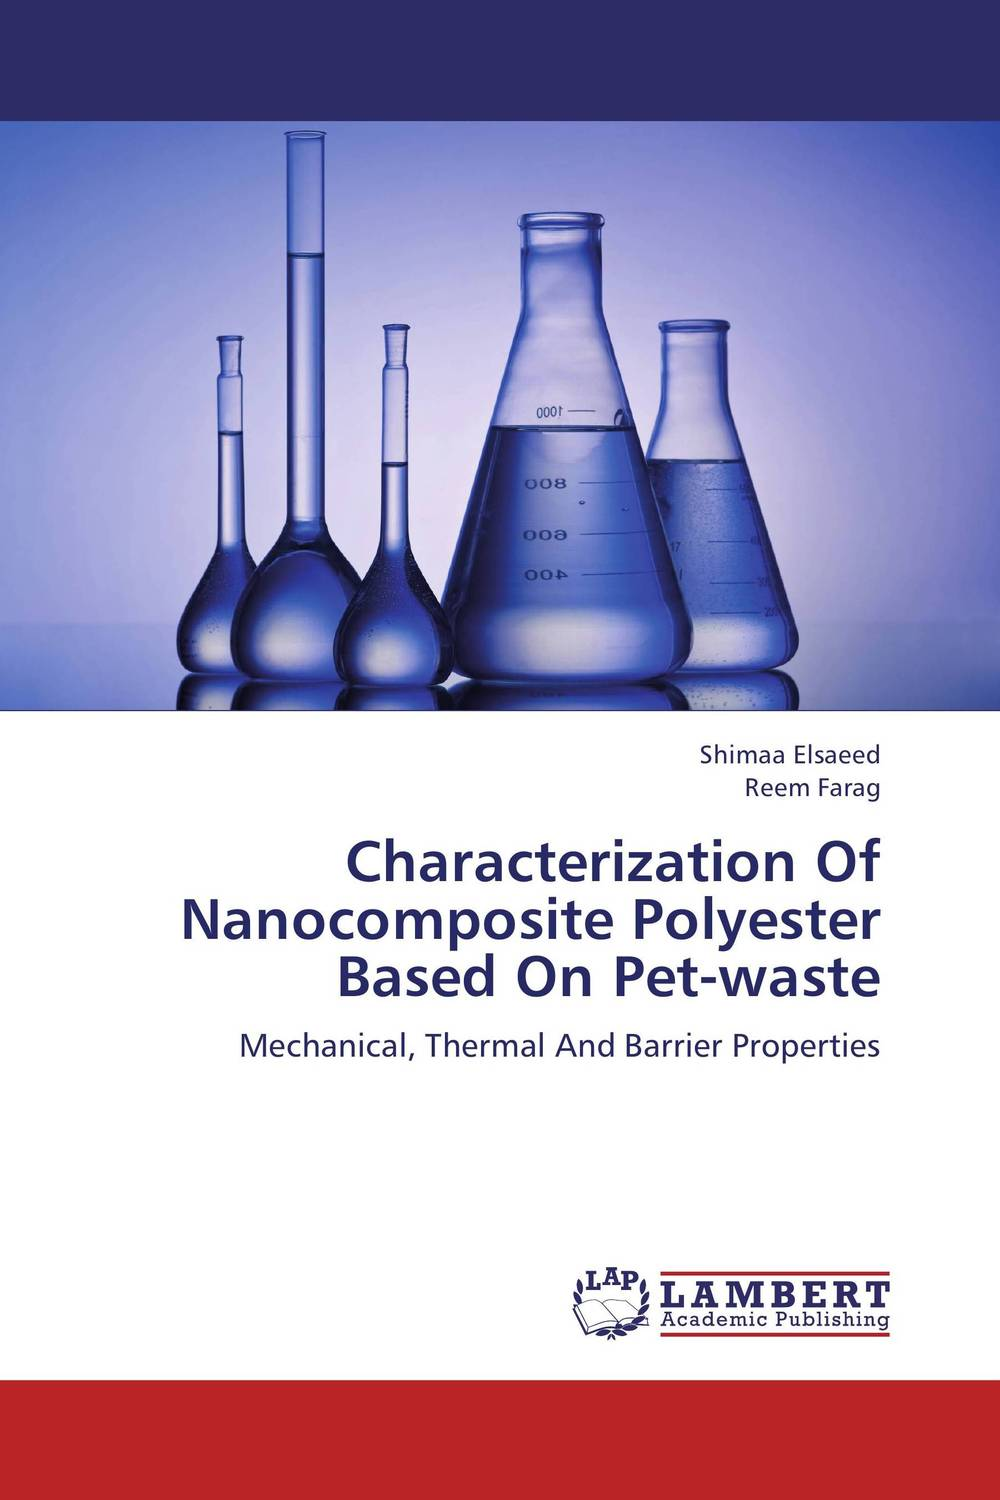 Characterization Of Nanocomposite Polyester Based On Pet-waste pla nanocomposite an overview